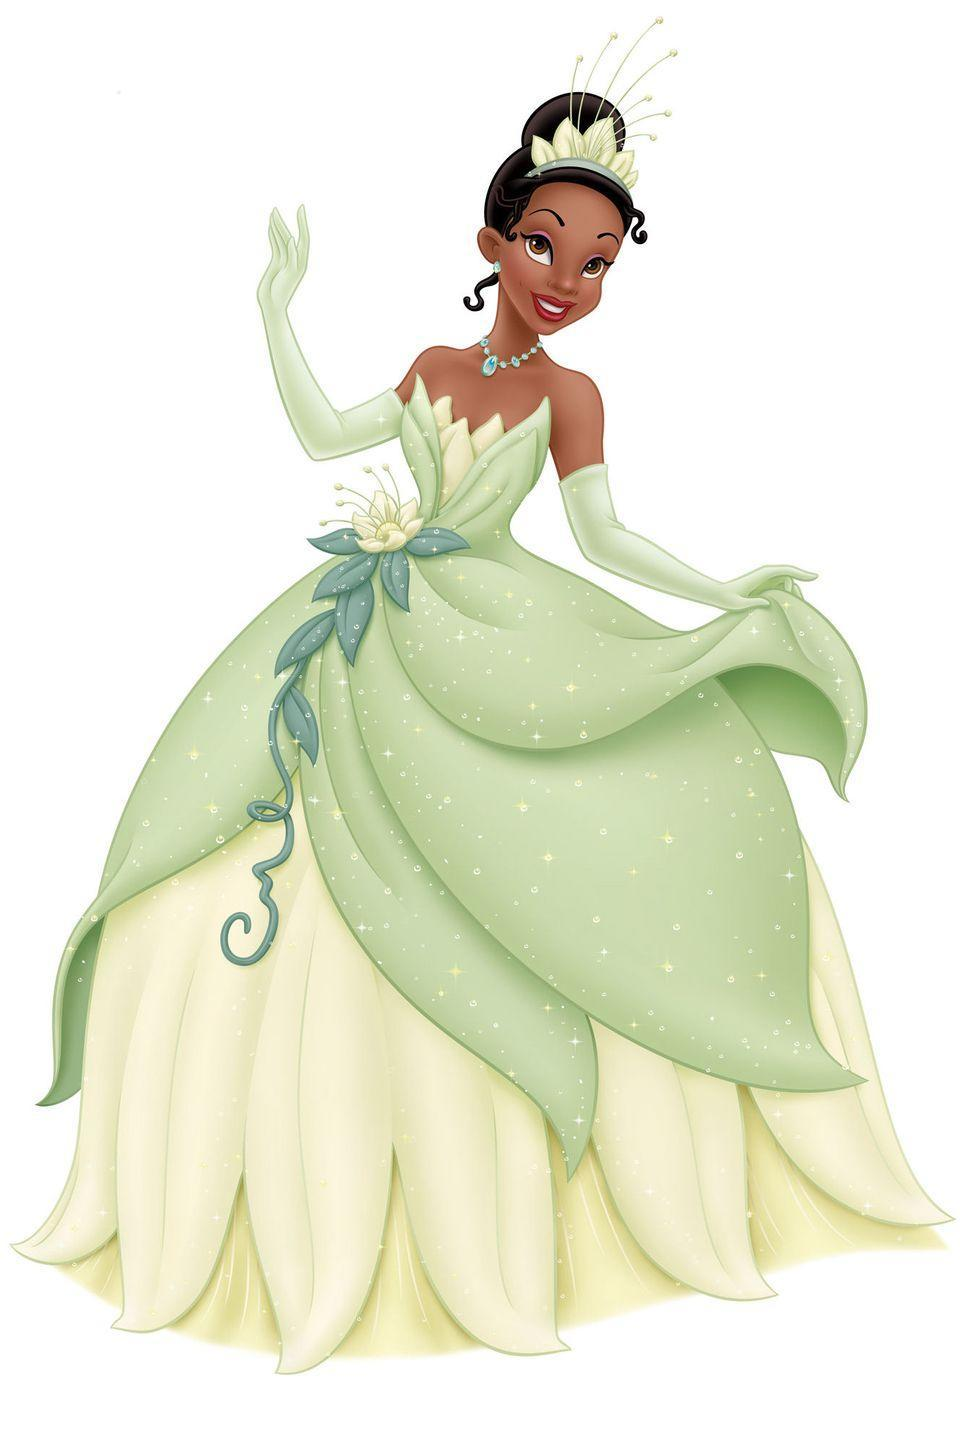 <p>Disney's 2009 movie <em>The Princess and the Frog</em> features Tiana, an aspiring chef in New Orleans who marries into royalty.</p>